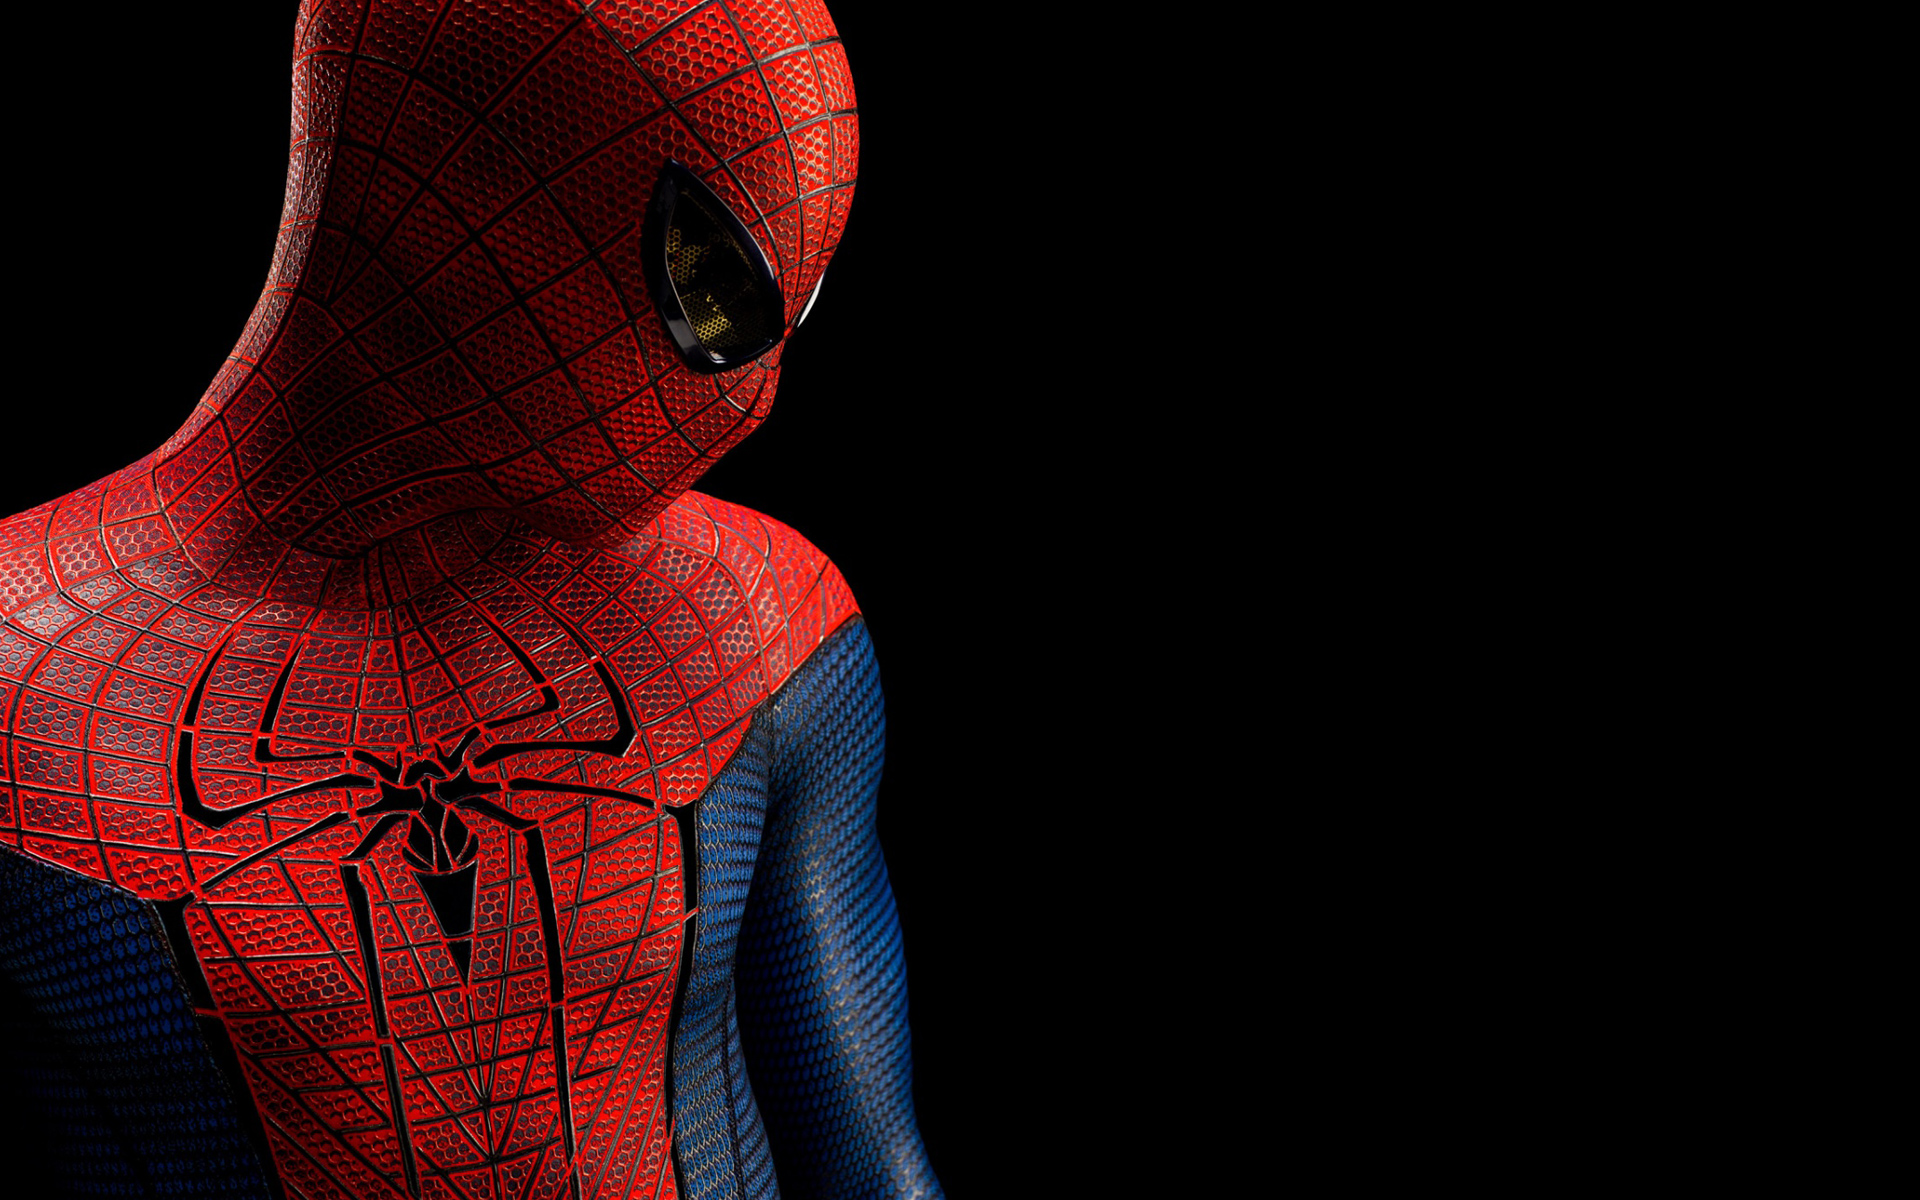 wallpaper spiderman black animated wallpaper spiderman wallpaper best 1920x1200